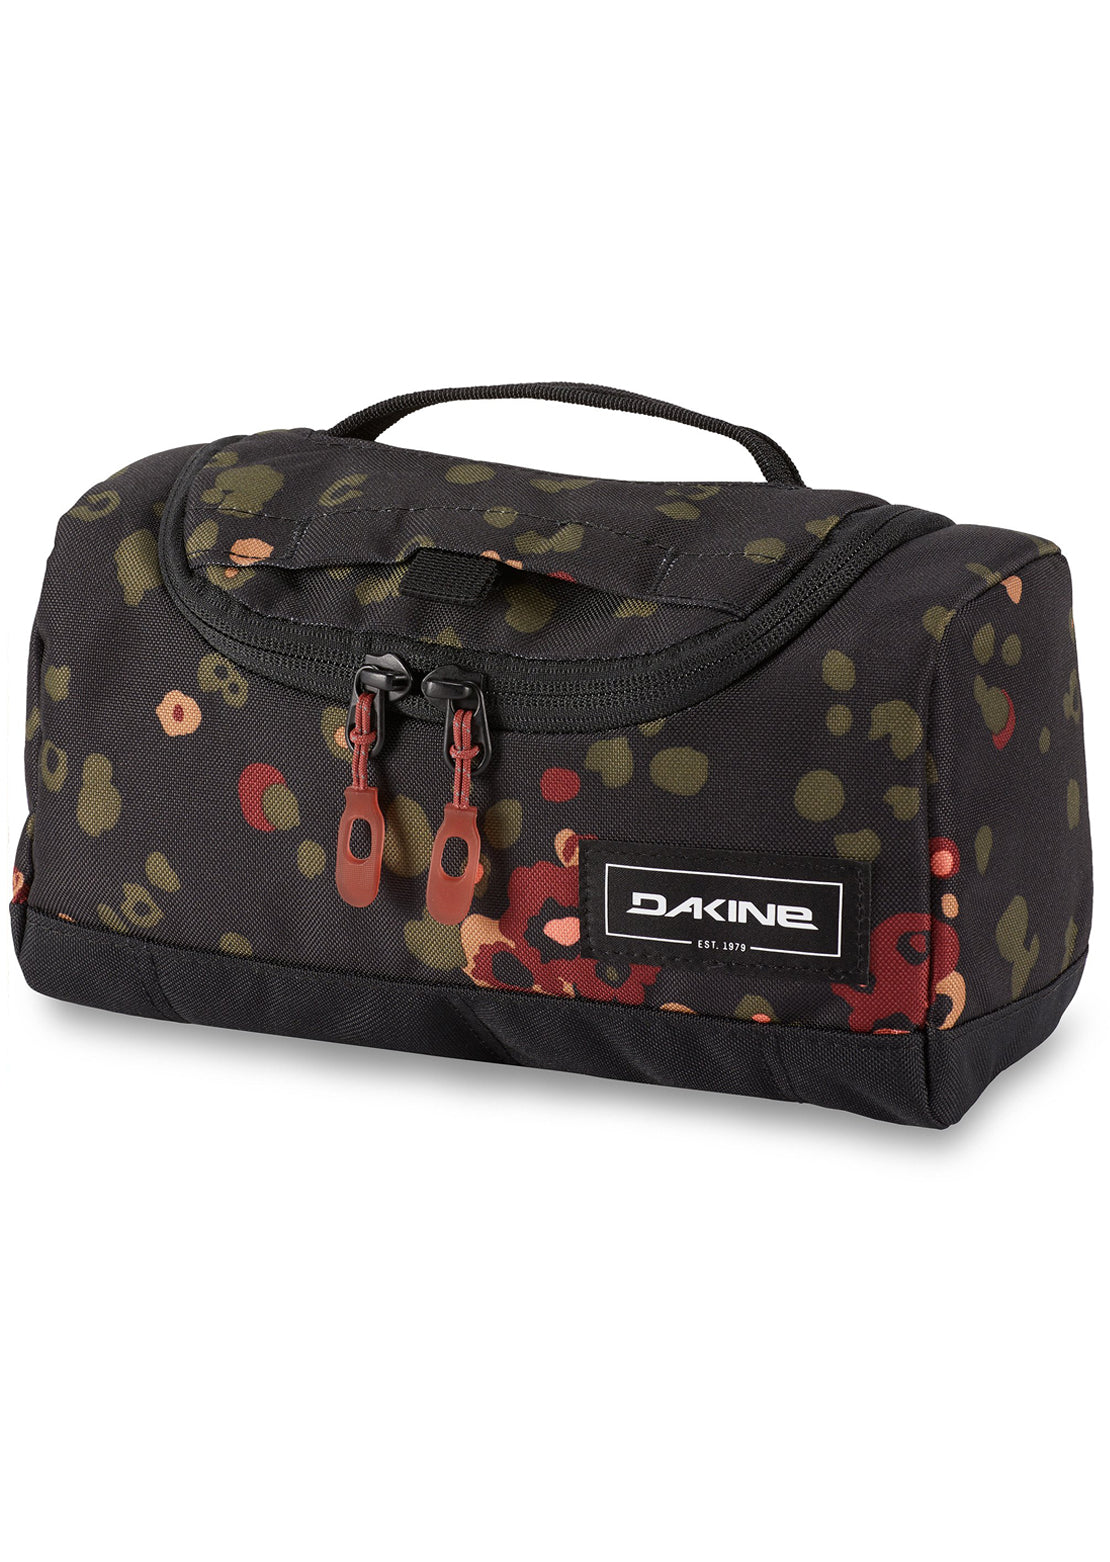 Dakine Revival Medium Kit Begonia